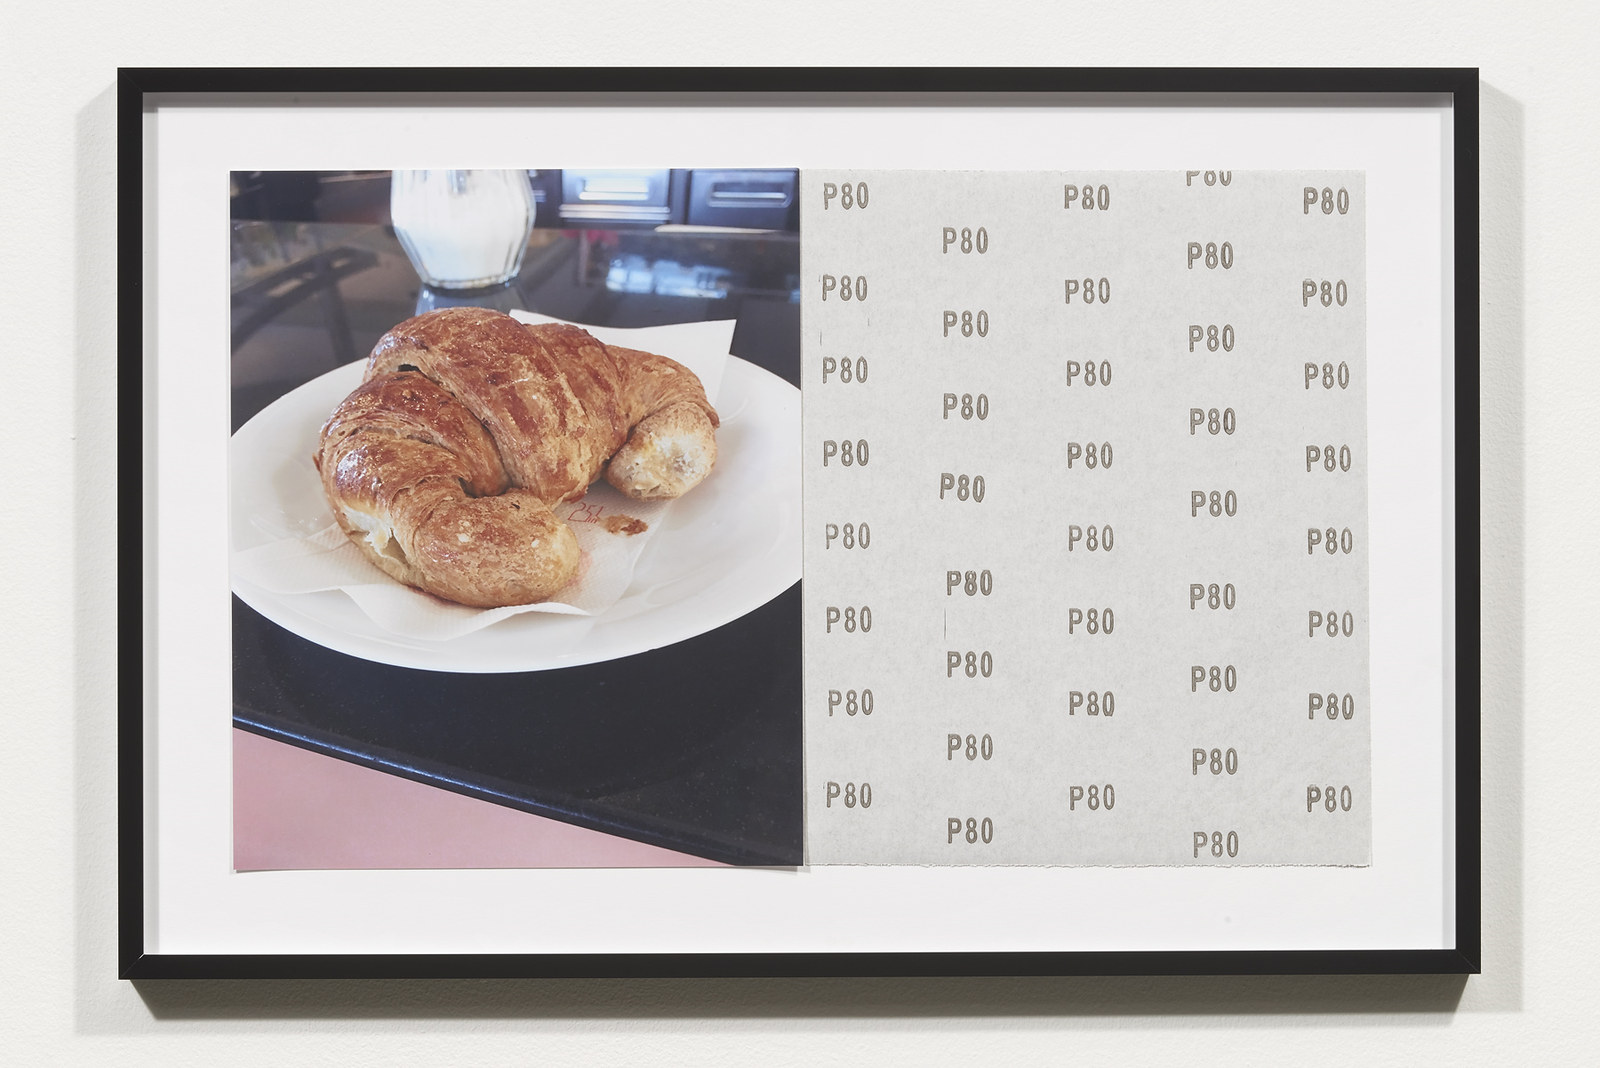 Wermers_Croissants & Architecture #14, 2016_C-print, sandpaper sheet, framed_14 3_8 x 21 1_2 in_NW00055PG